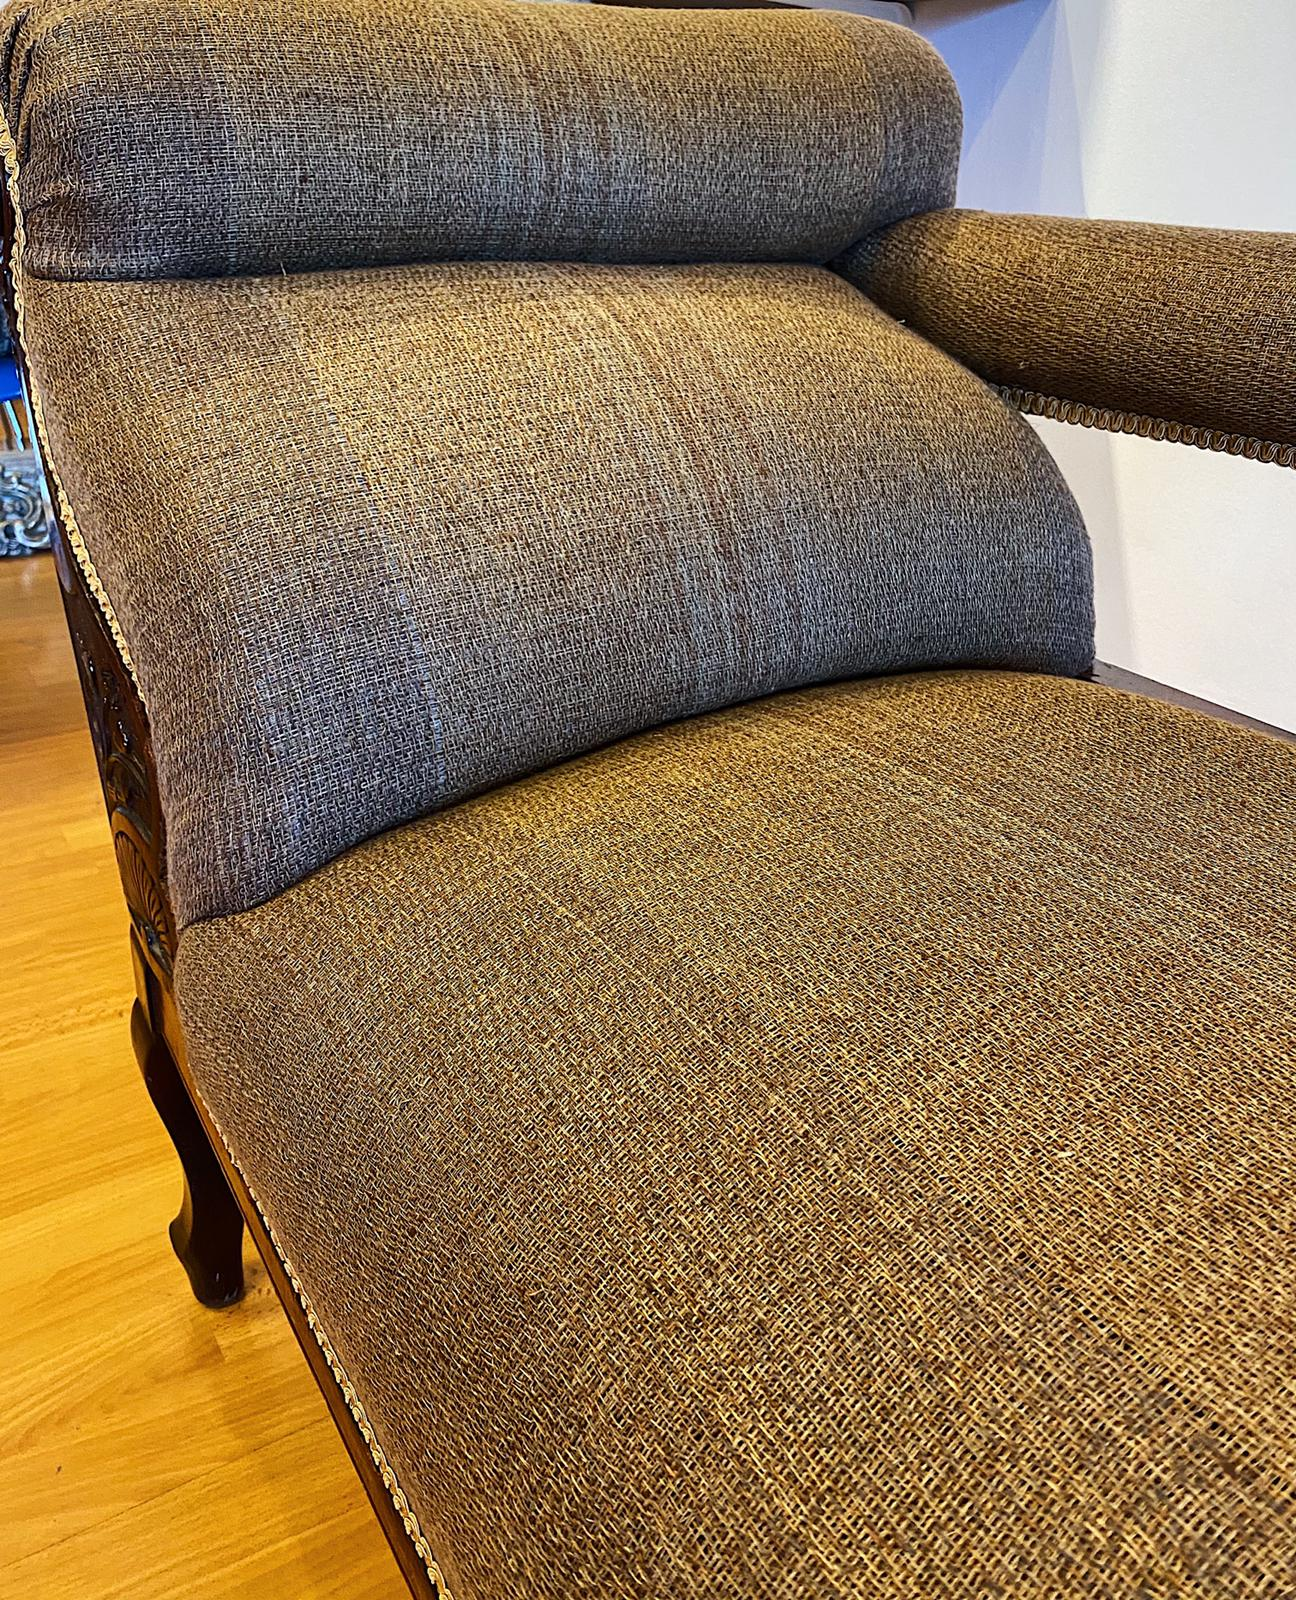 Bespoke upholstery fabric with reels of thread